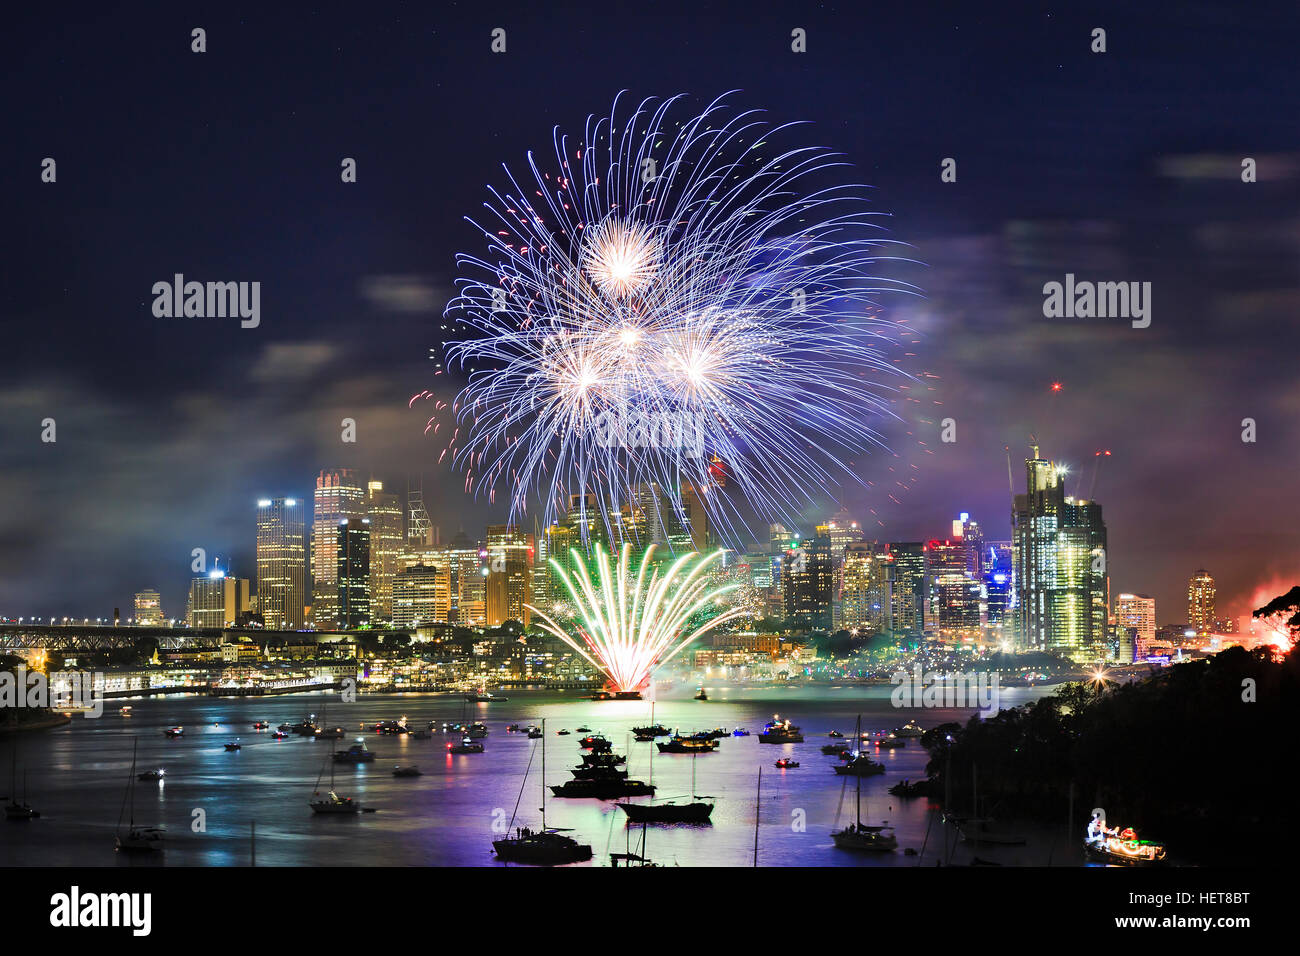 Sydney city CBD at New Year eve Fireworks over still water of Harbour. Blue light ball illuminate towers and landmarks Stock Photo